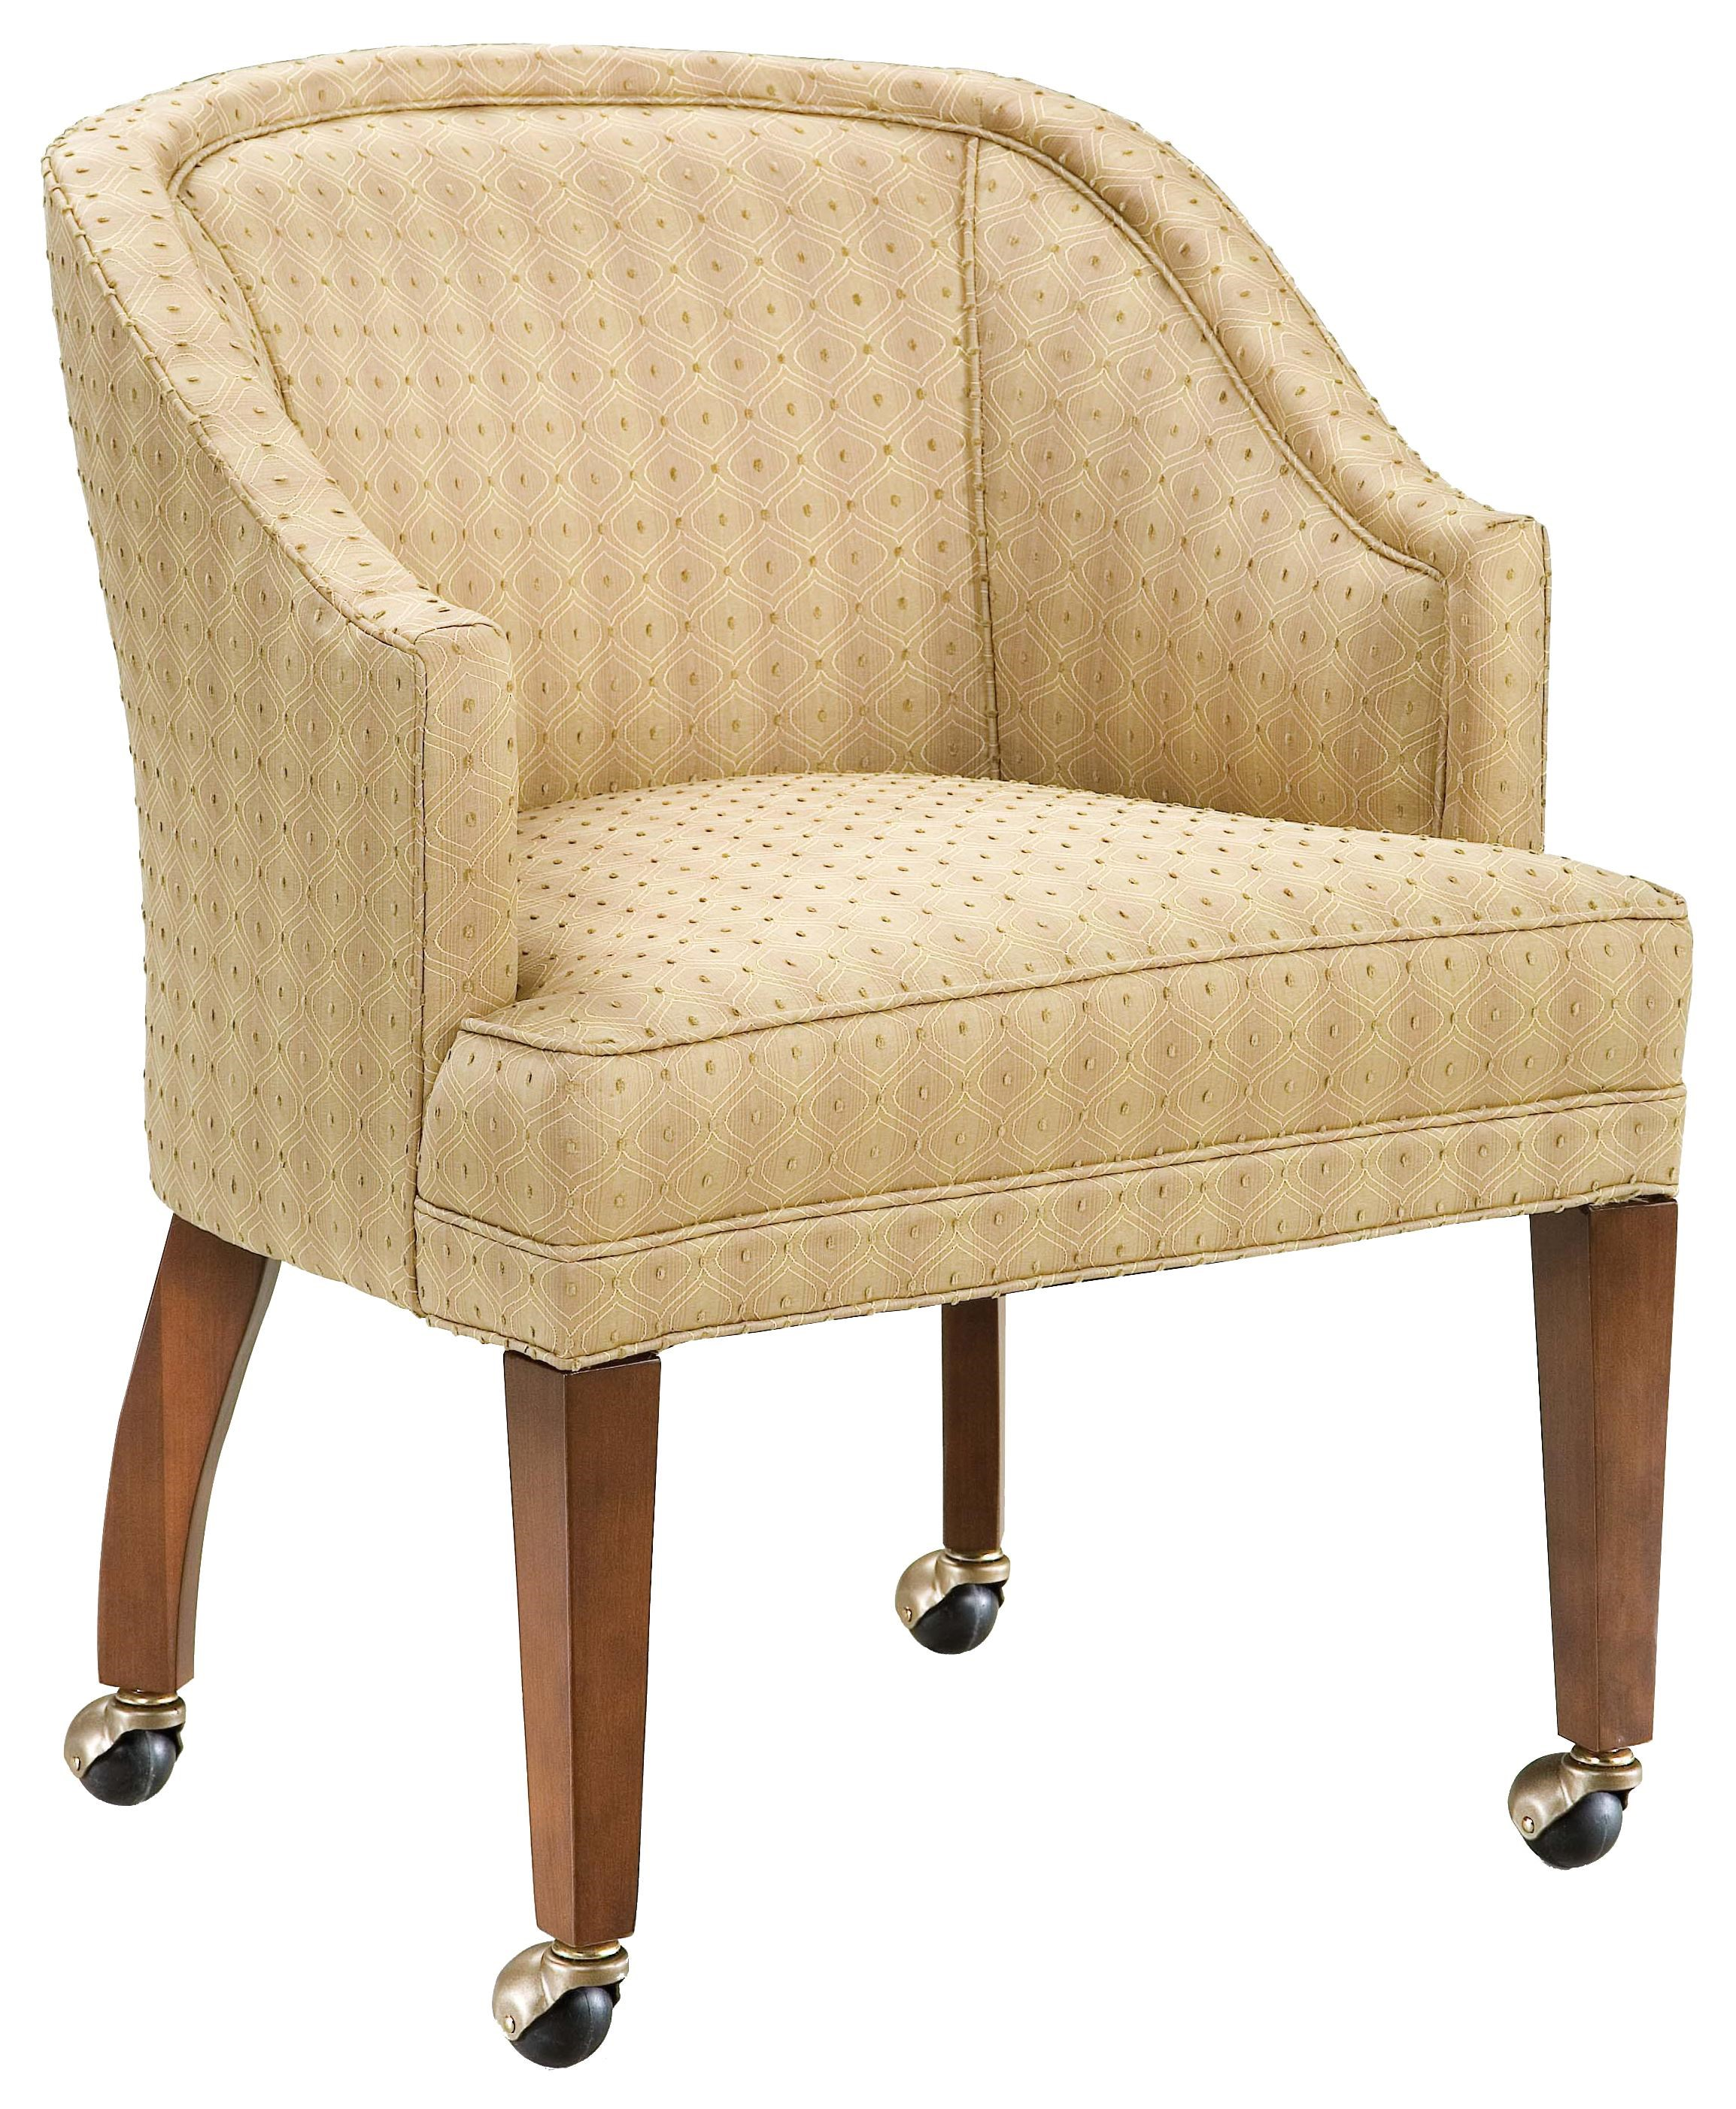 Charmant Fairfield Chairs Caster Wheel Accent Lounge Chair